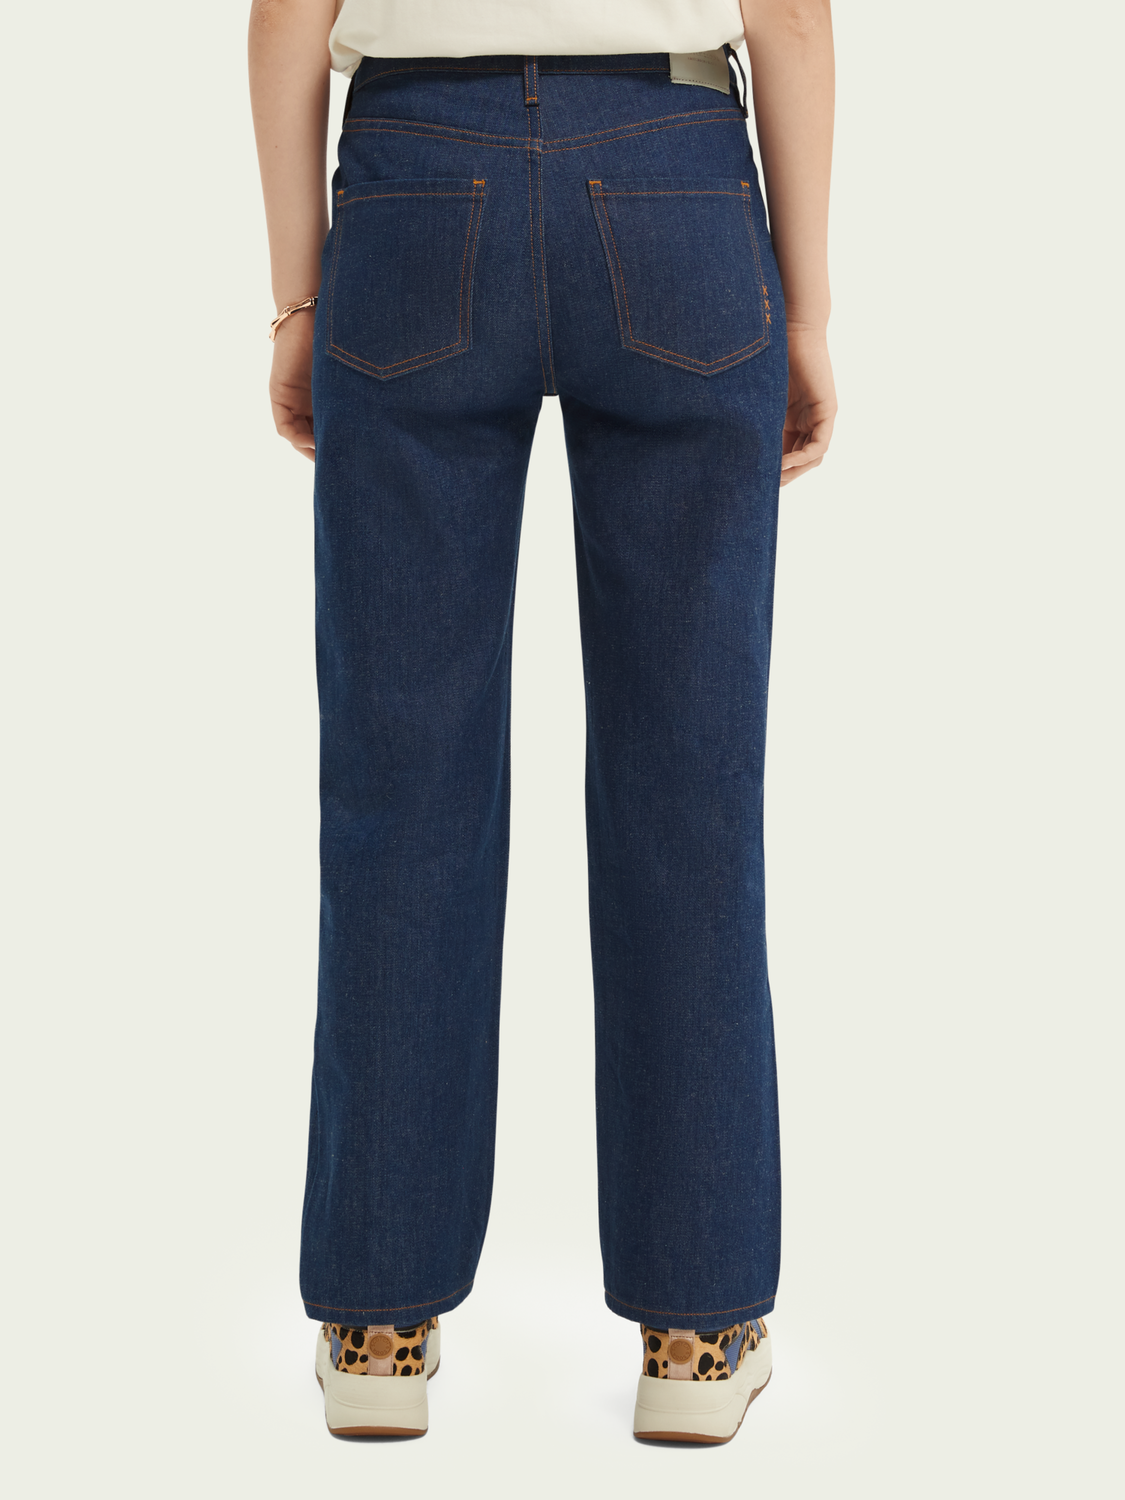 Damer The Sky jeans med high-rise straight fit - In The Blue